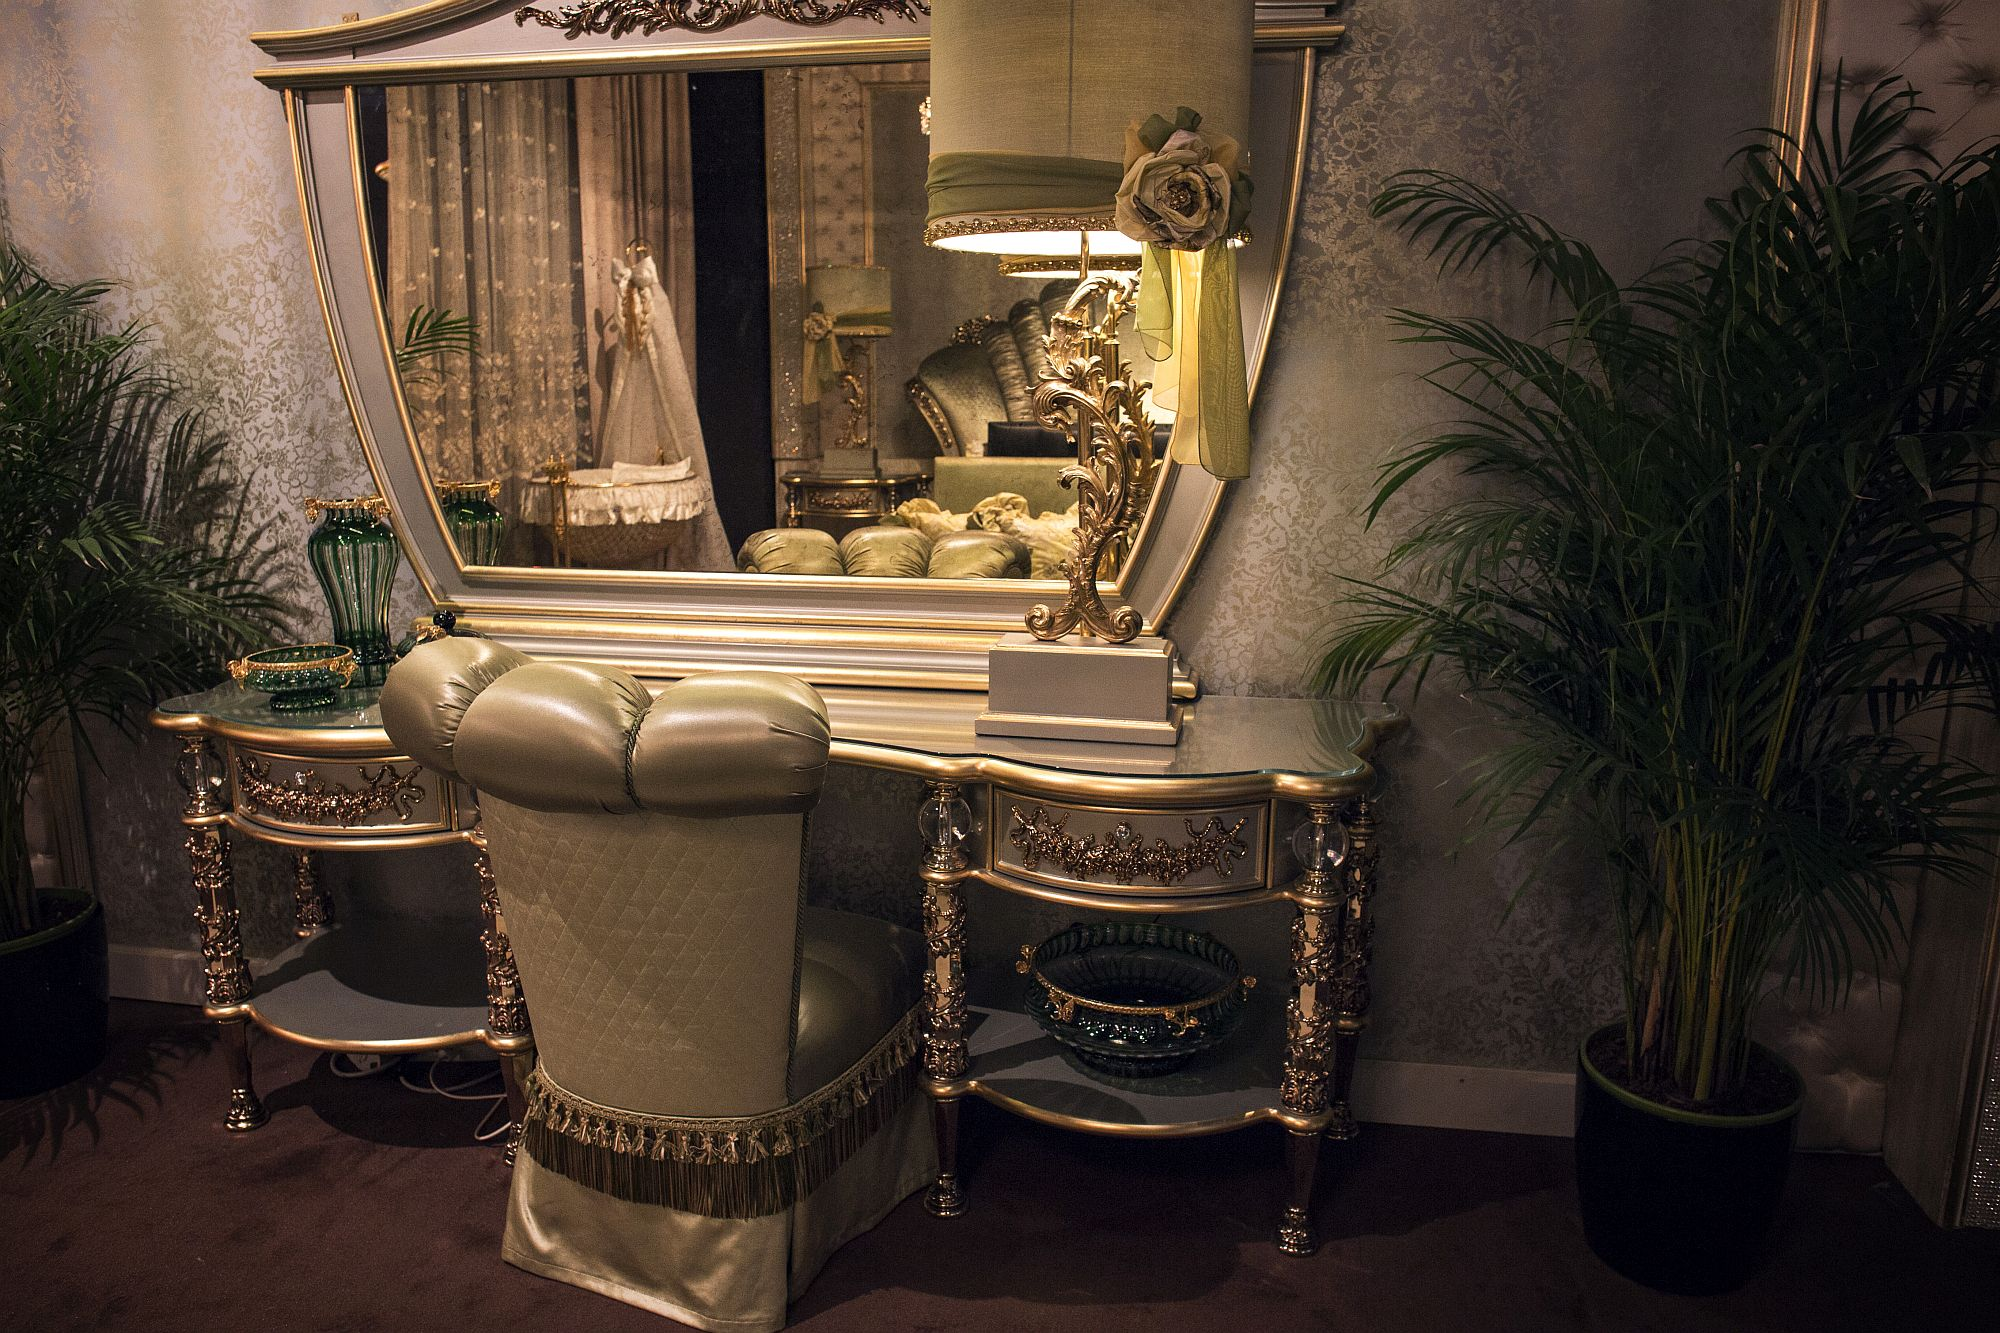 Ornate brings an air of luxury to this bedroom dressing area